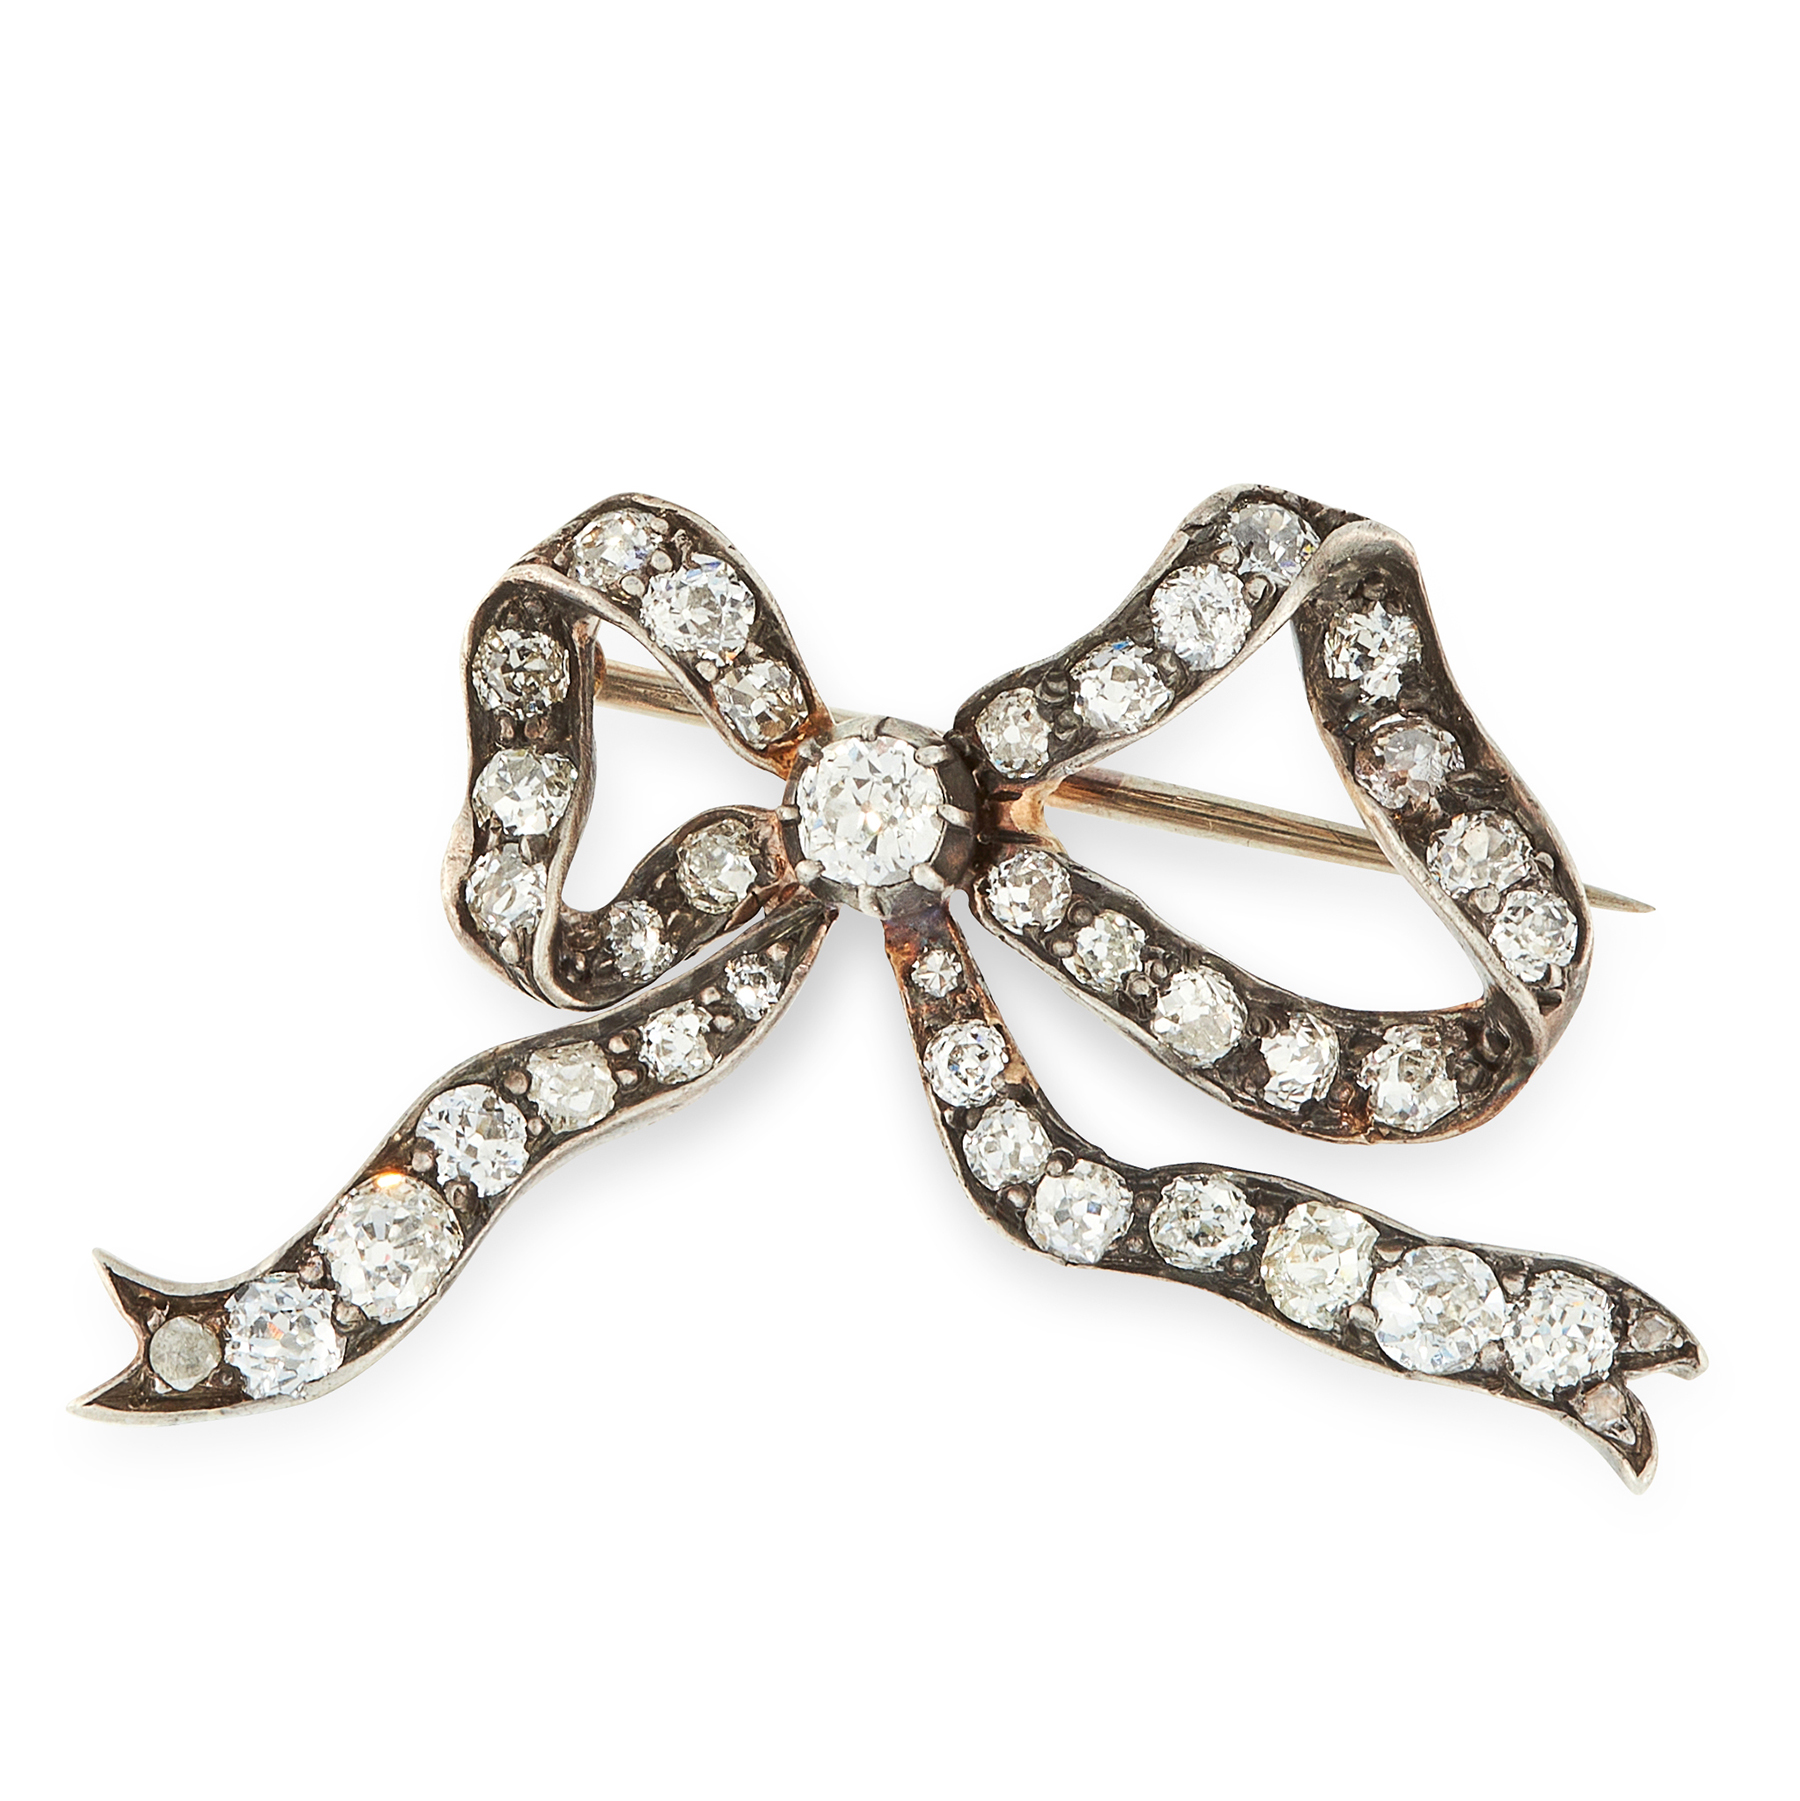 AN ANTIQUE DIAMOND BOW BROOCH, 19TH CENTURY in yellow gold and silver, designed as a ribbon tied - Image 2 of 2